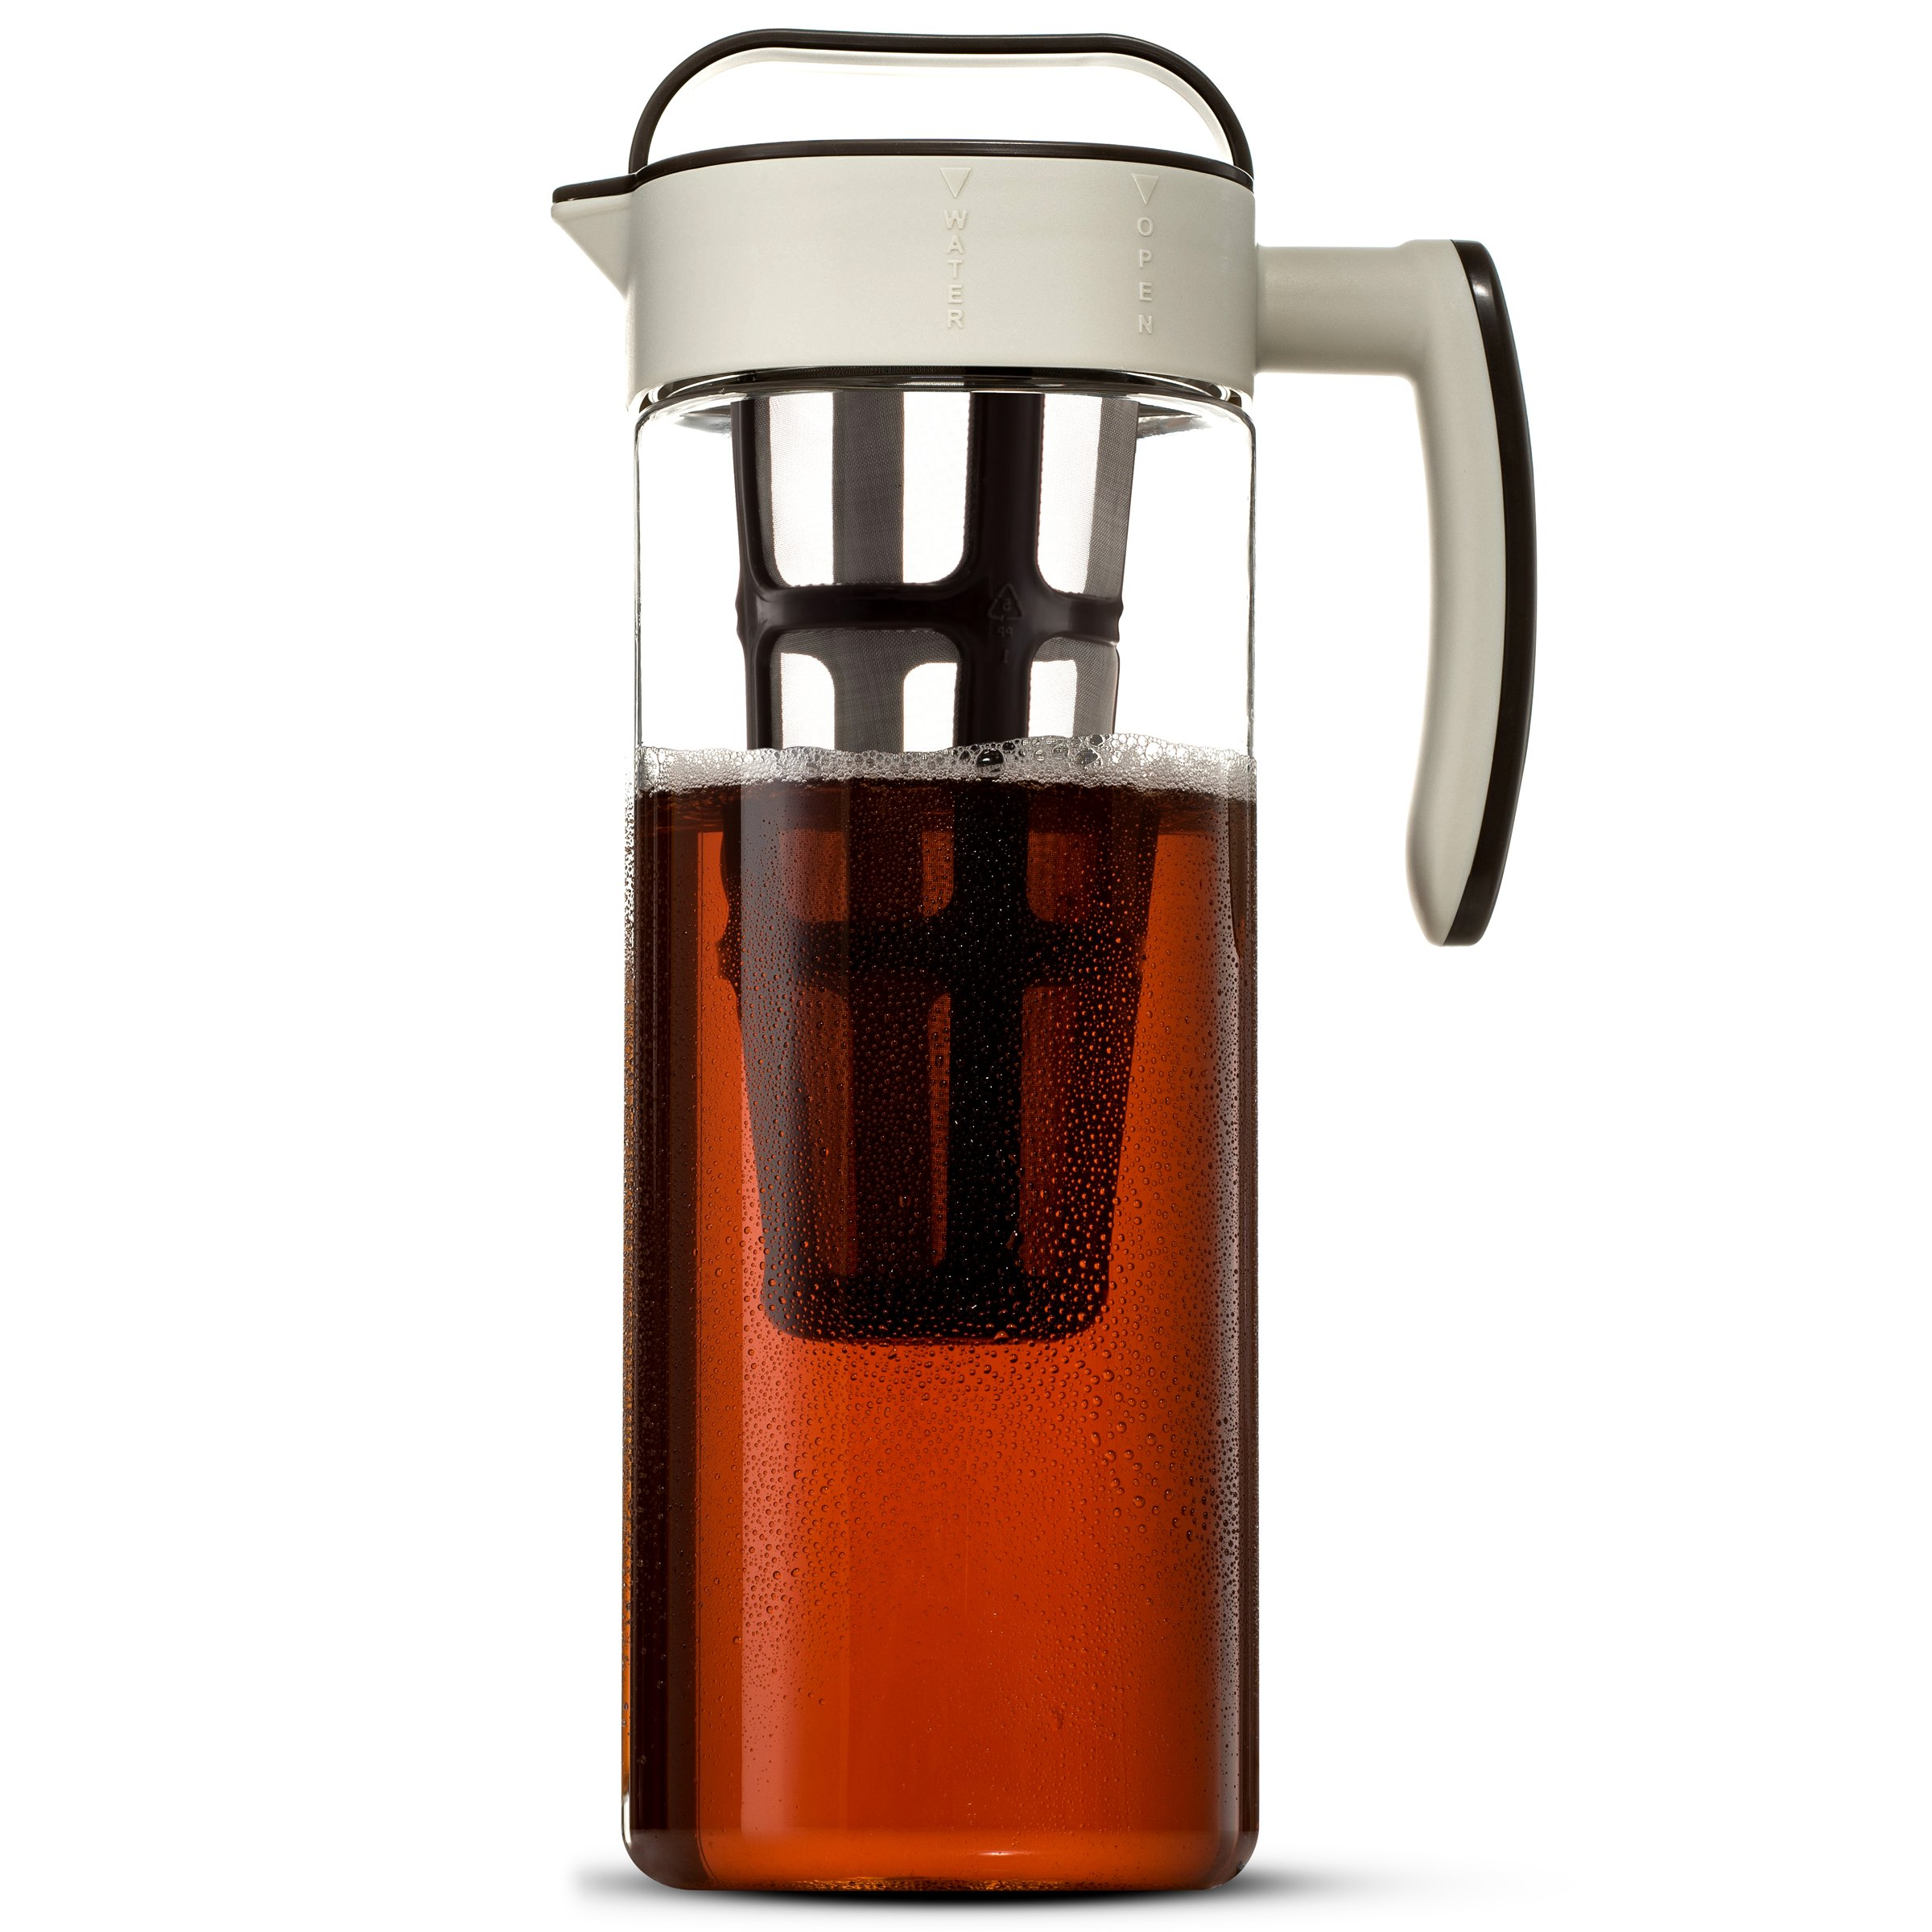 Komax Large Cold Brew Coffee Maker 2 quart (8 Cups) Tritan Pitcher - With Stainless Steel Mesh Infuser - Air Tight Seal, Space Saving Square Design For Concentrated Hot or Cold Beverages by Komax